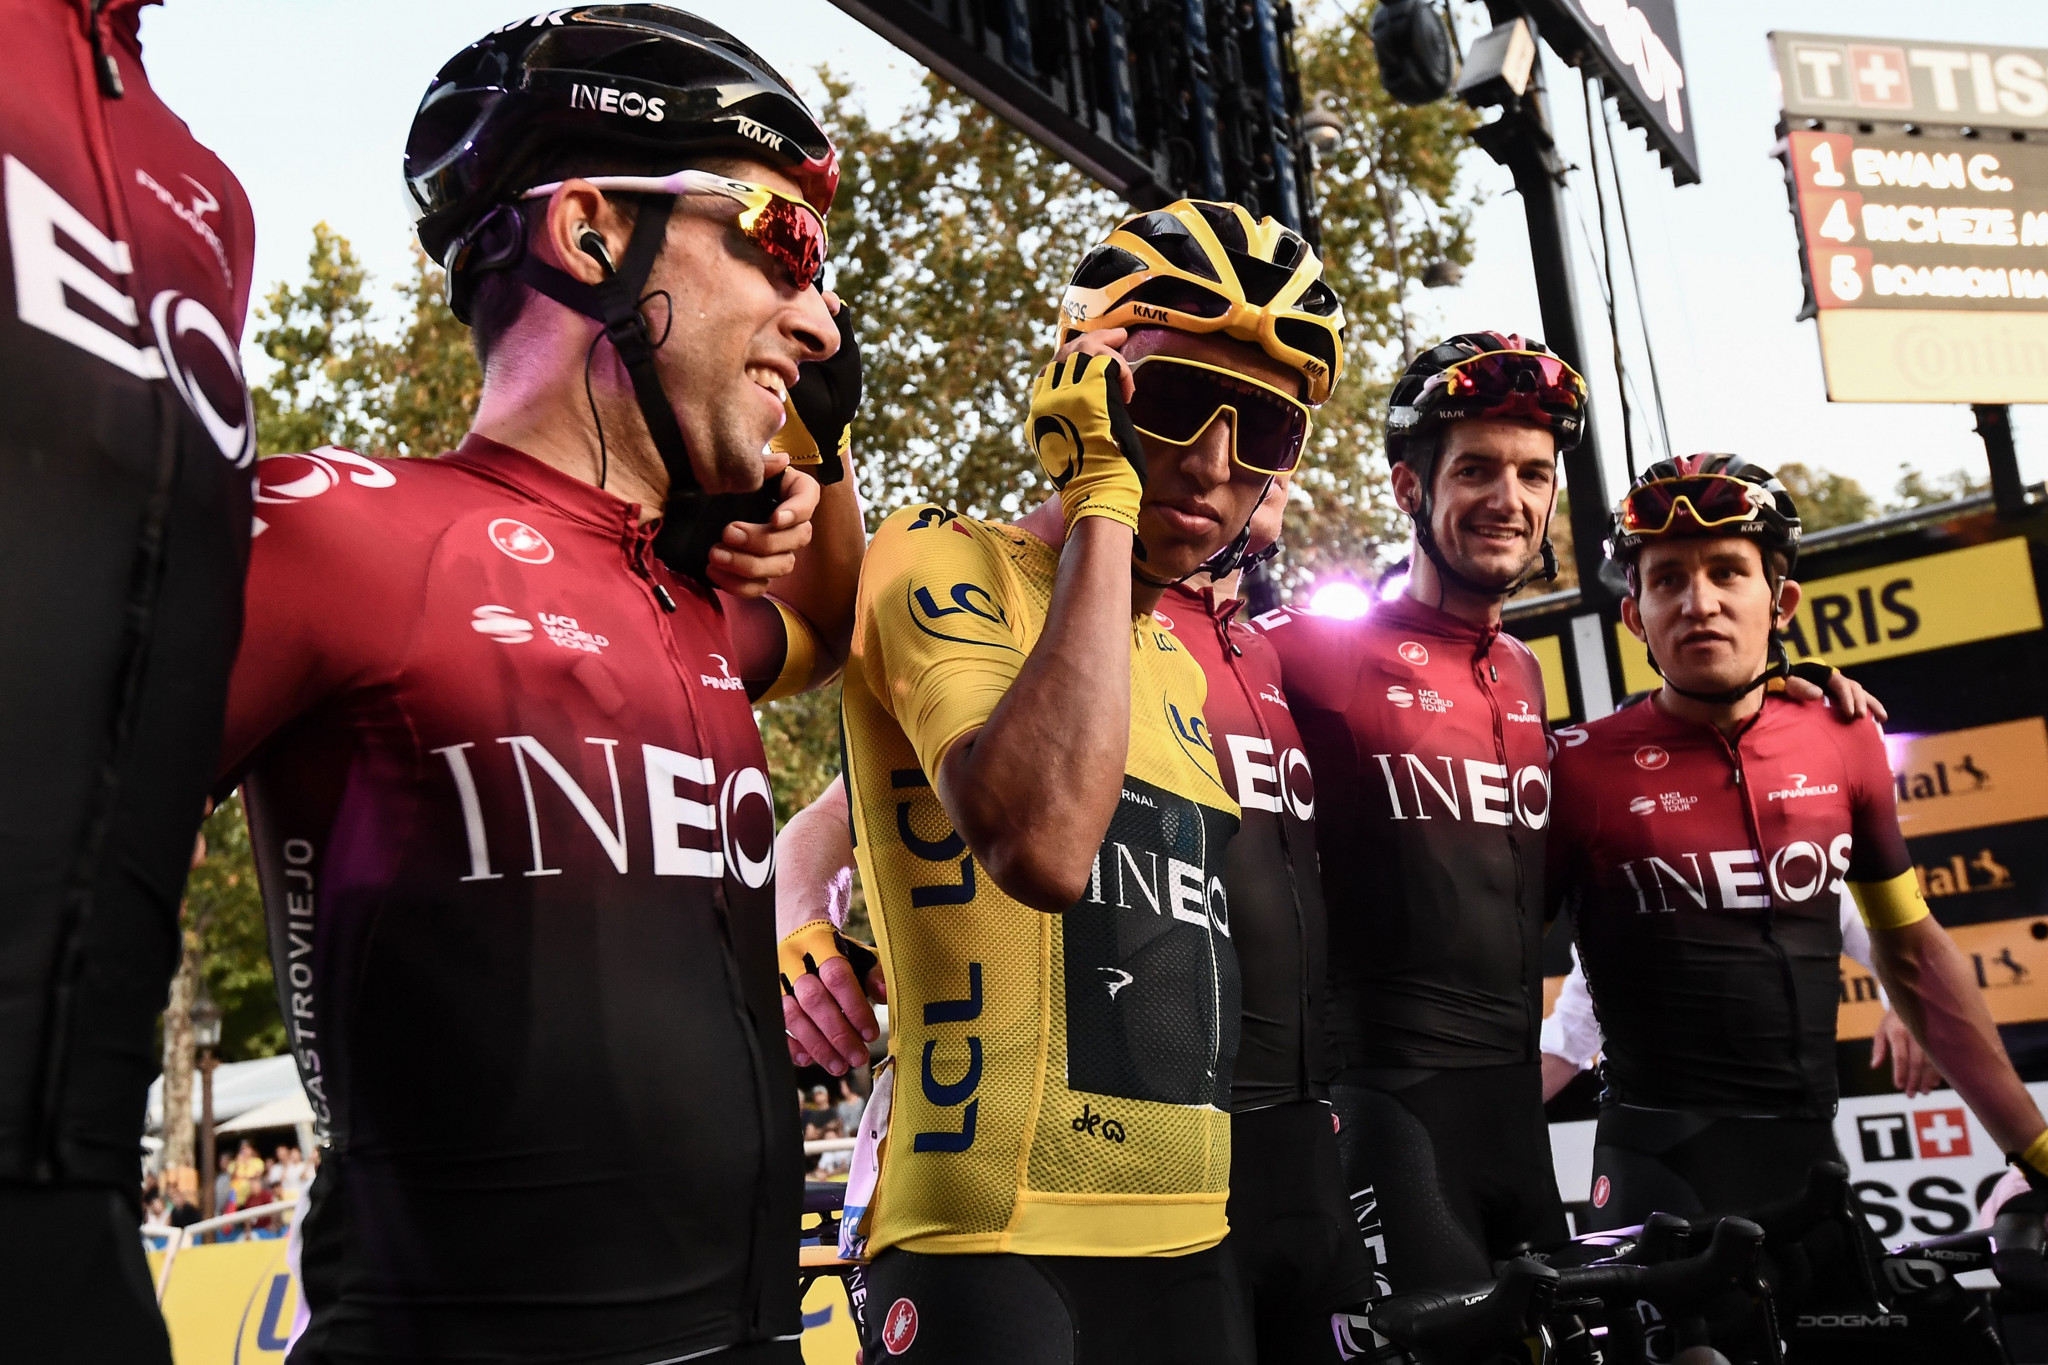 Team Ineos, formerly Team Sky, have won the Tour de France for the last five years ©Getty Images